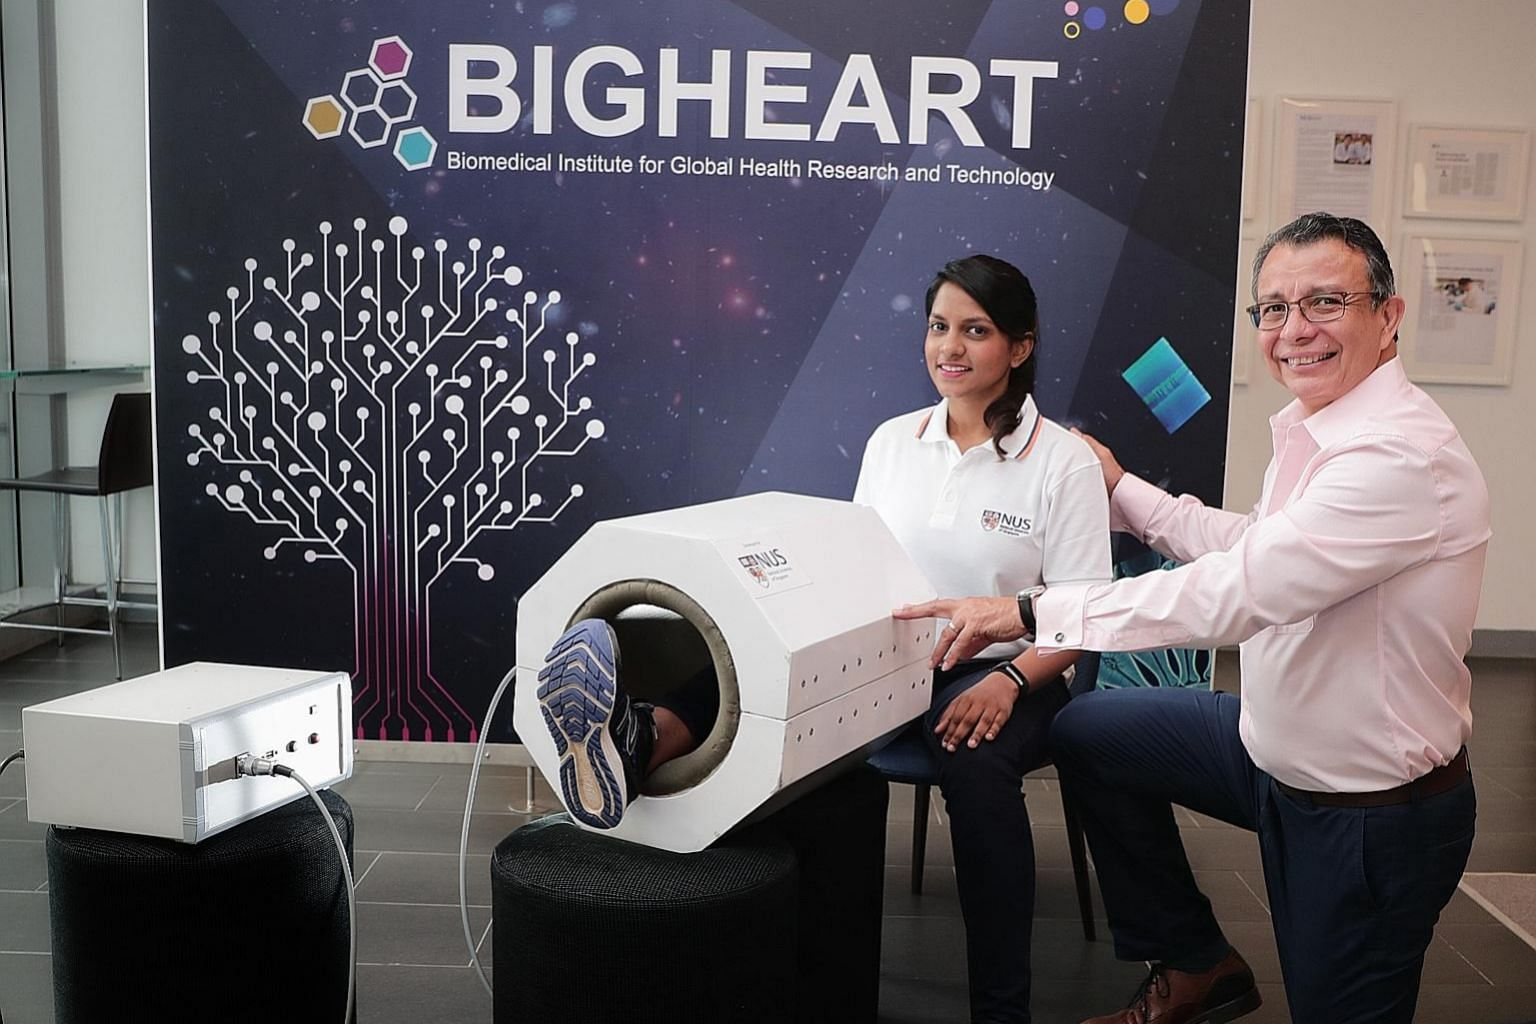 Research assistant Sharanya Ramanan showing how MRegen works, with Associate Professor Alfredo Franco-Obregon. The machine's prototype resembles a miniature MRI scanner that is large enough for a person to insert one leg.